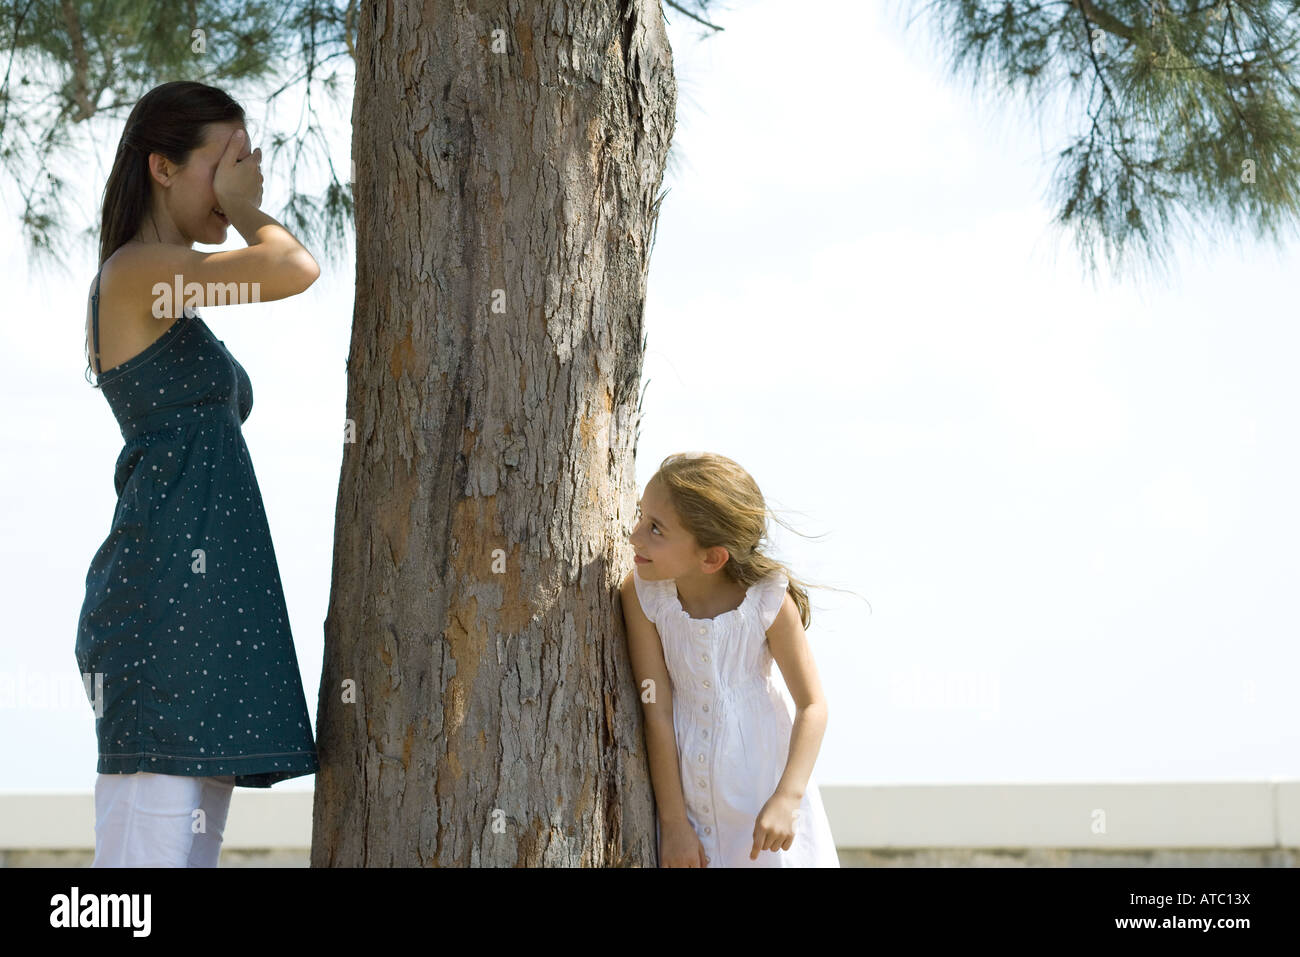 Two sisters playing hide-and-seek together, one covering eyes with her hand - Stock Image